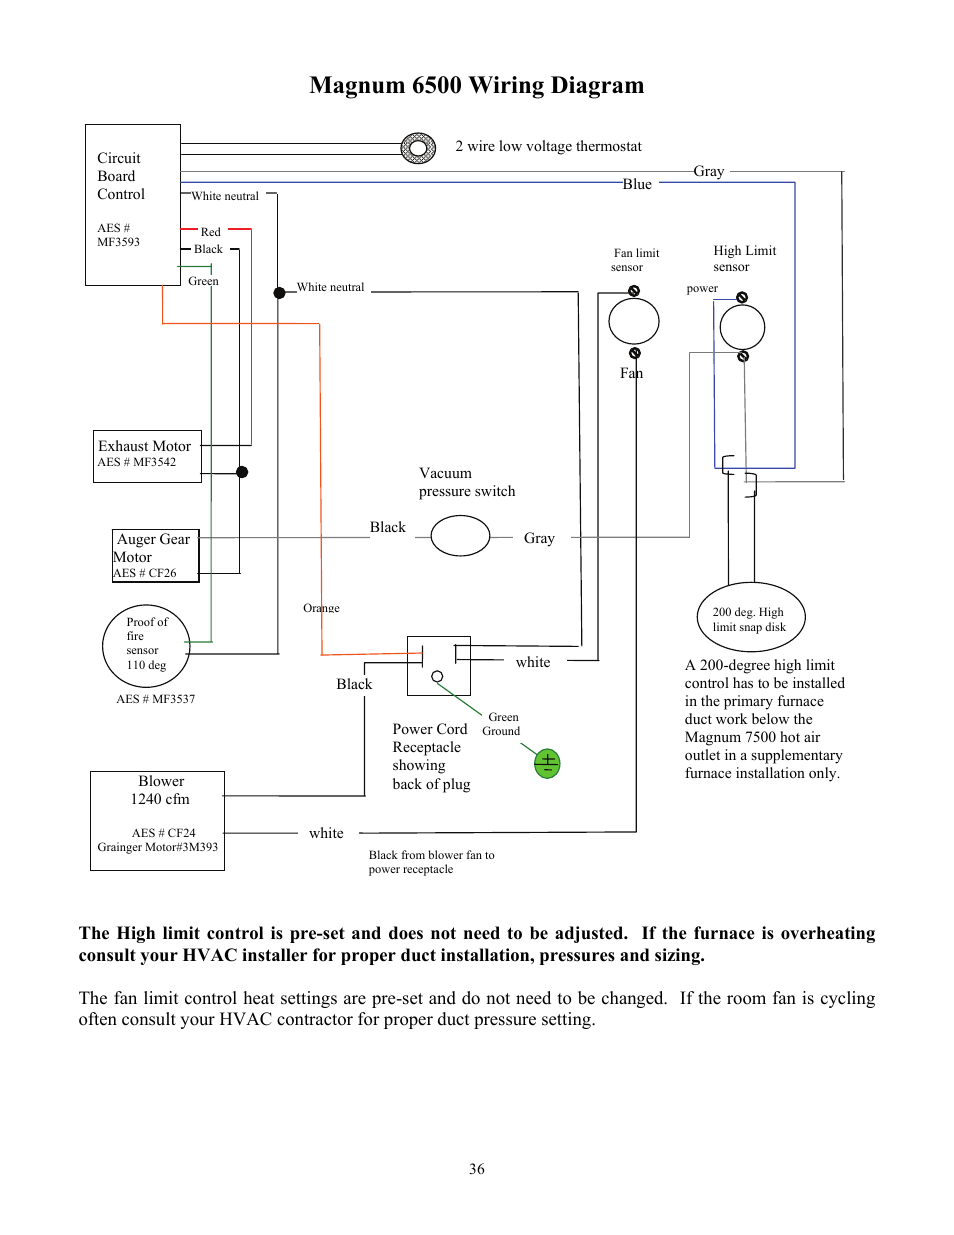 Magnum 6500 wiring diagram | American Energy Systems MagnuM 7500 User  Manual | Page 36 / 45